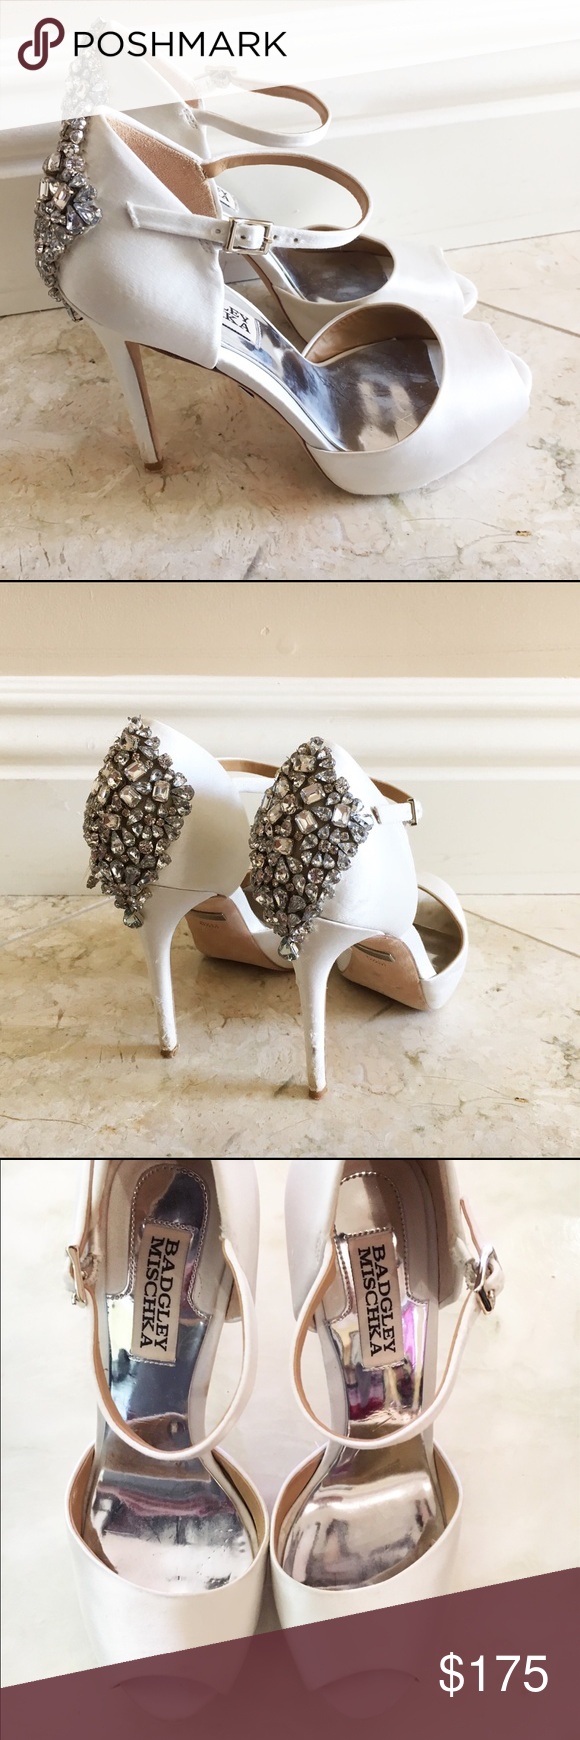 """'Gene' Crystal Back Ankle Strap Pump Gorgeous Badgley Mischka worn once on my wedding day with a few scuffs. These are slightly different from """"Dawn"""" - Gene has a higher platform at 5 inches. Original packaging included with box. Badgley Mischka Shoes Sandals"""